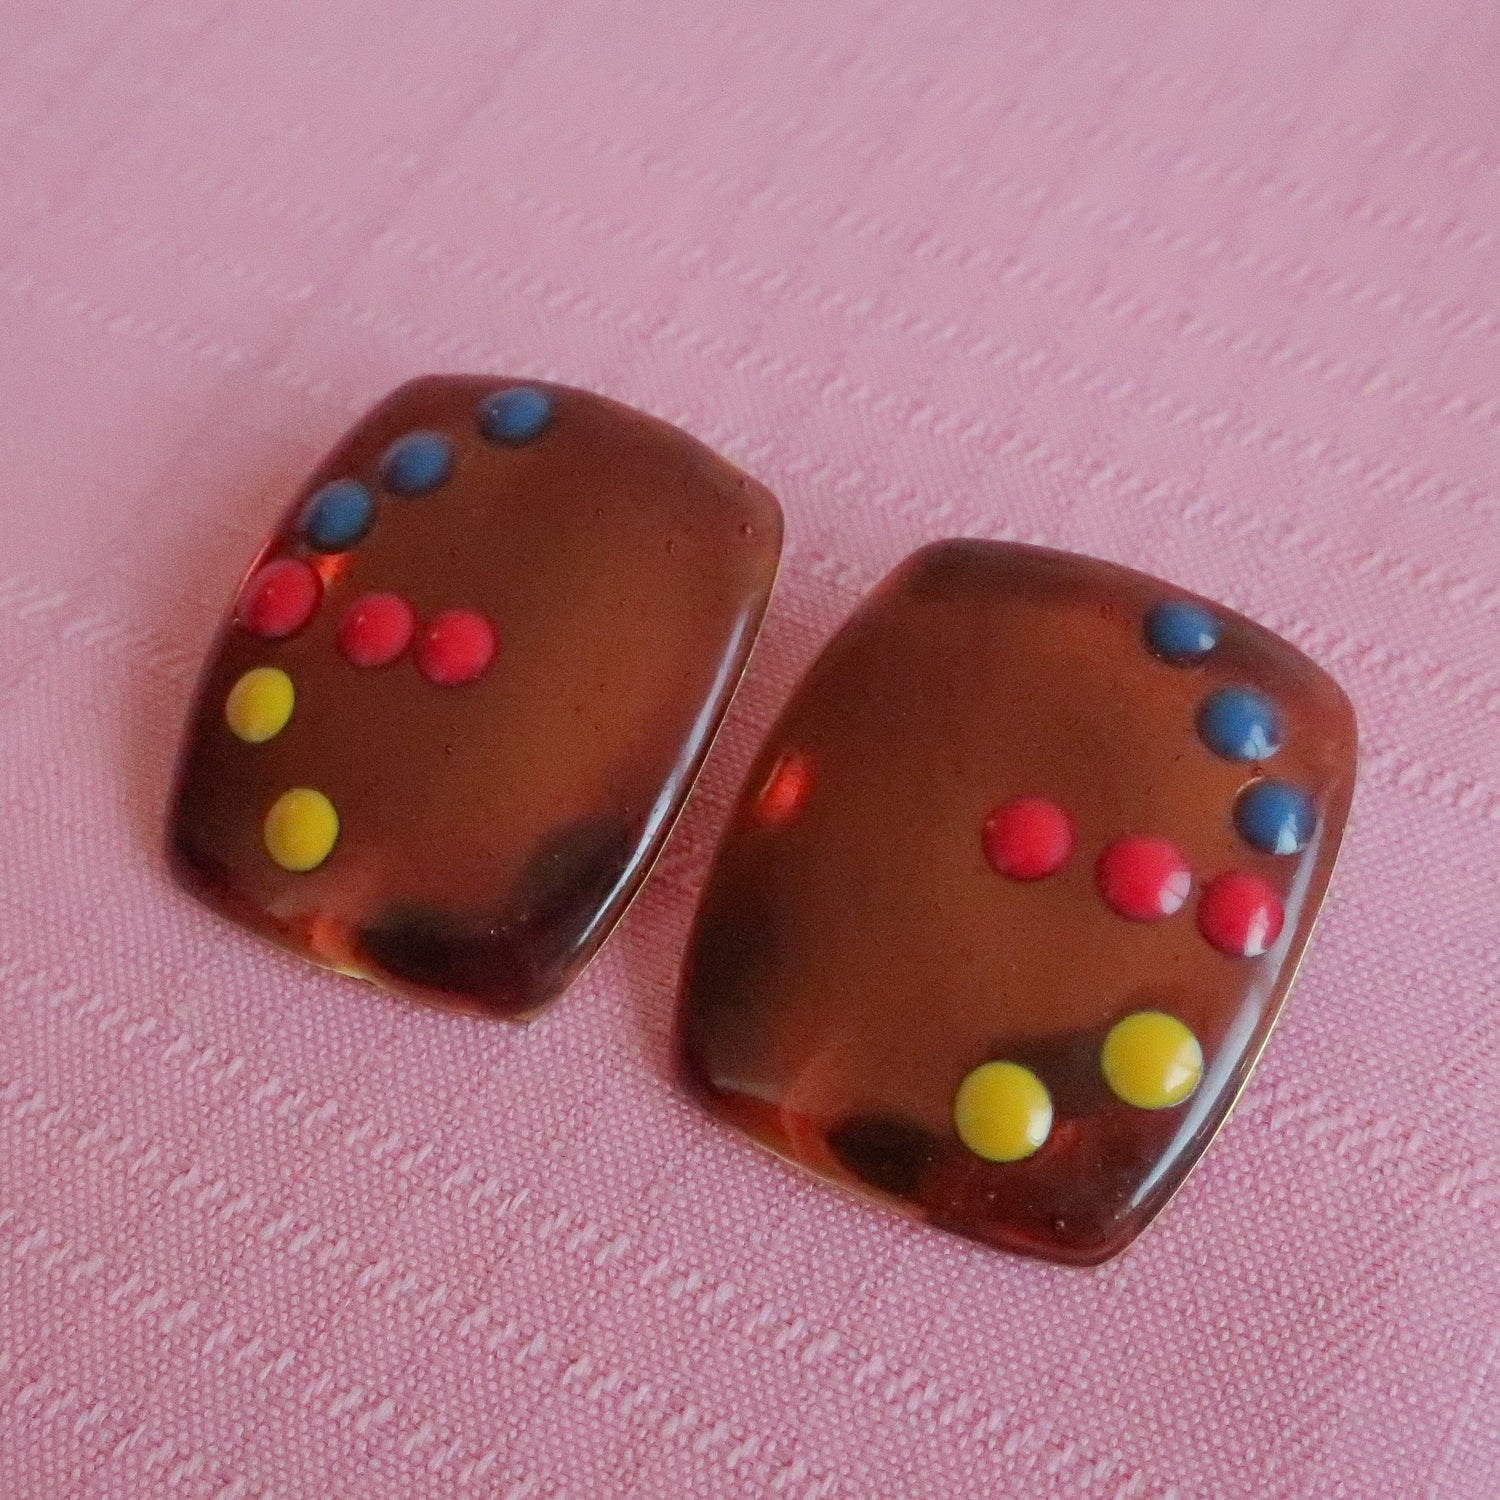 Second Room Vintage Clothing. Vintage rectangular metal copper tone earrings with arrow design, in red, yellow and blue dots. Free North American shipping on all orders.